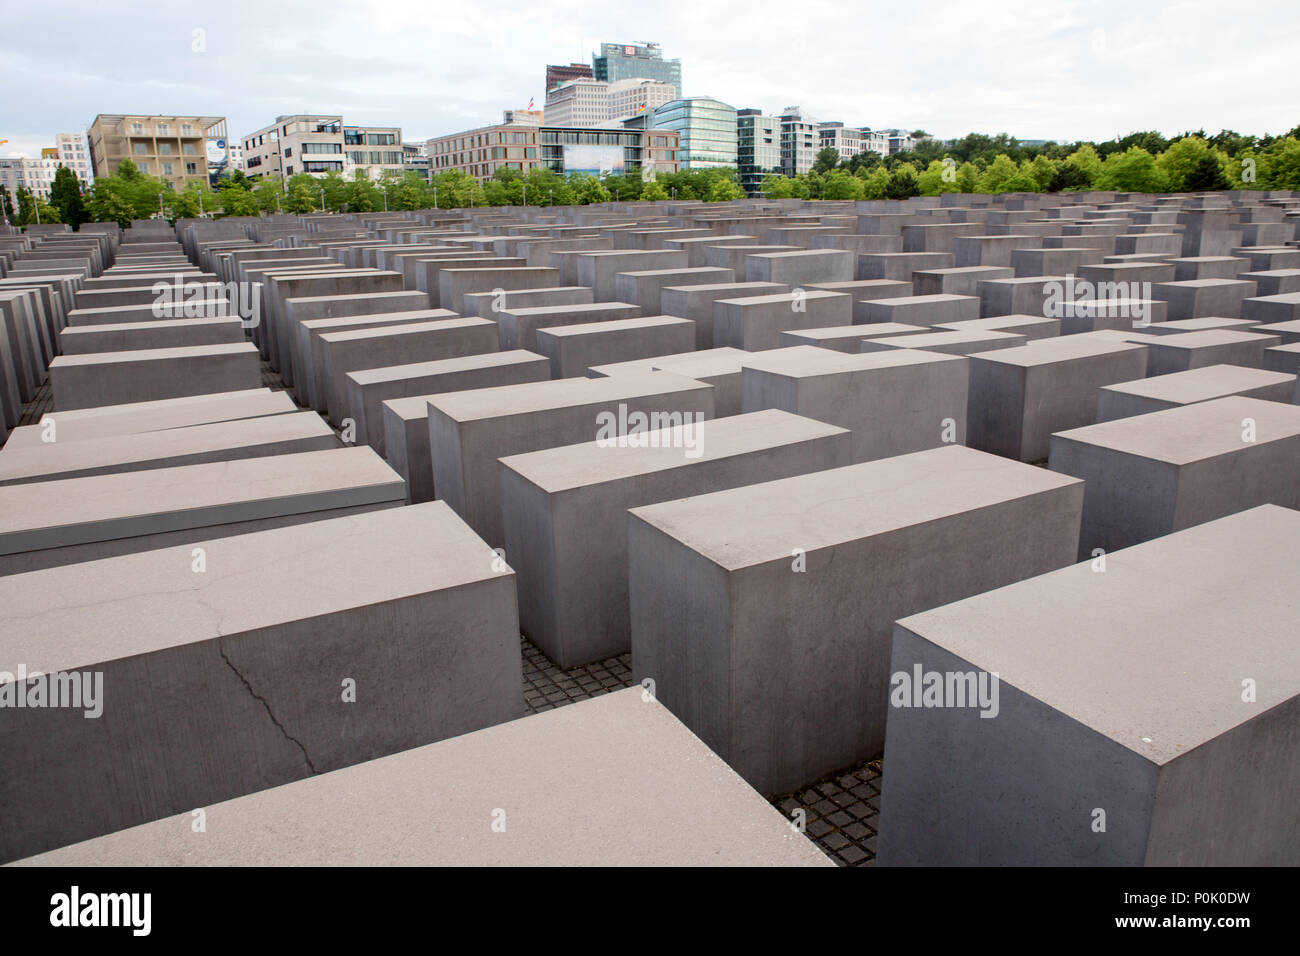 Memorial to the Murdered Jews of Europe, in Berlin - Stock Image